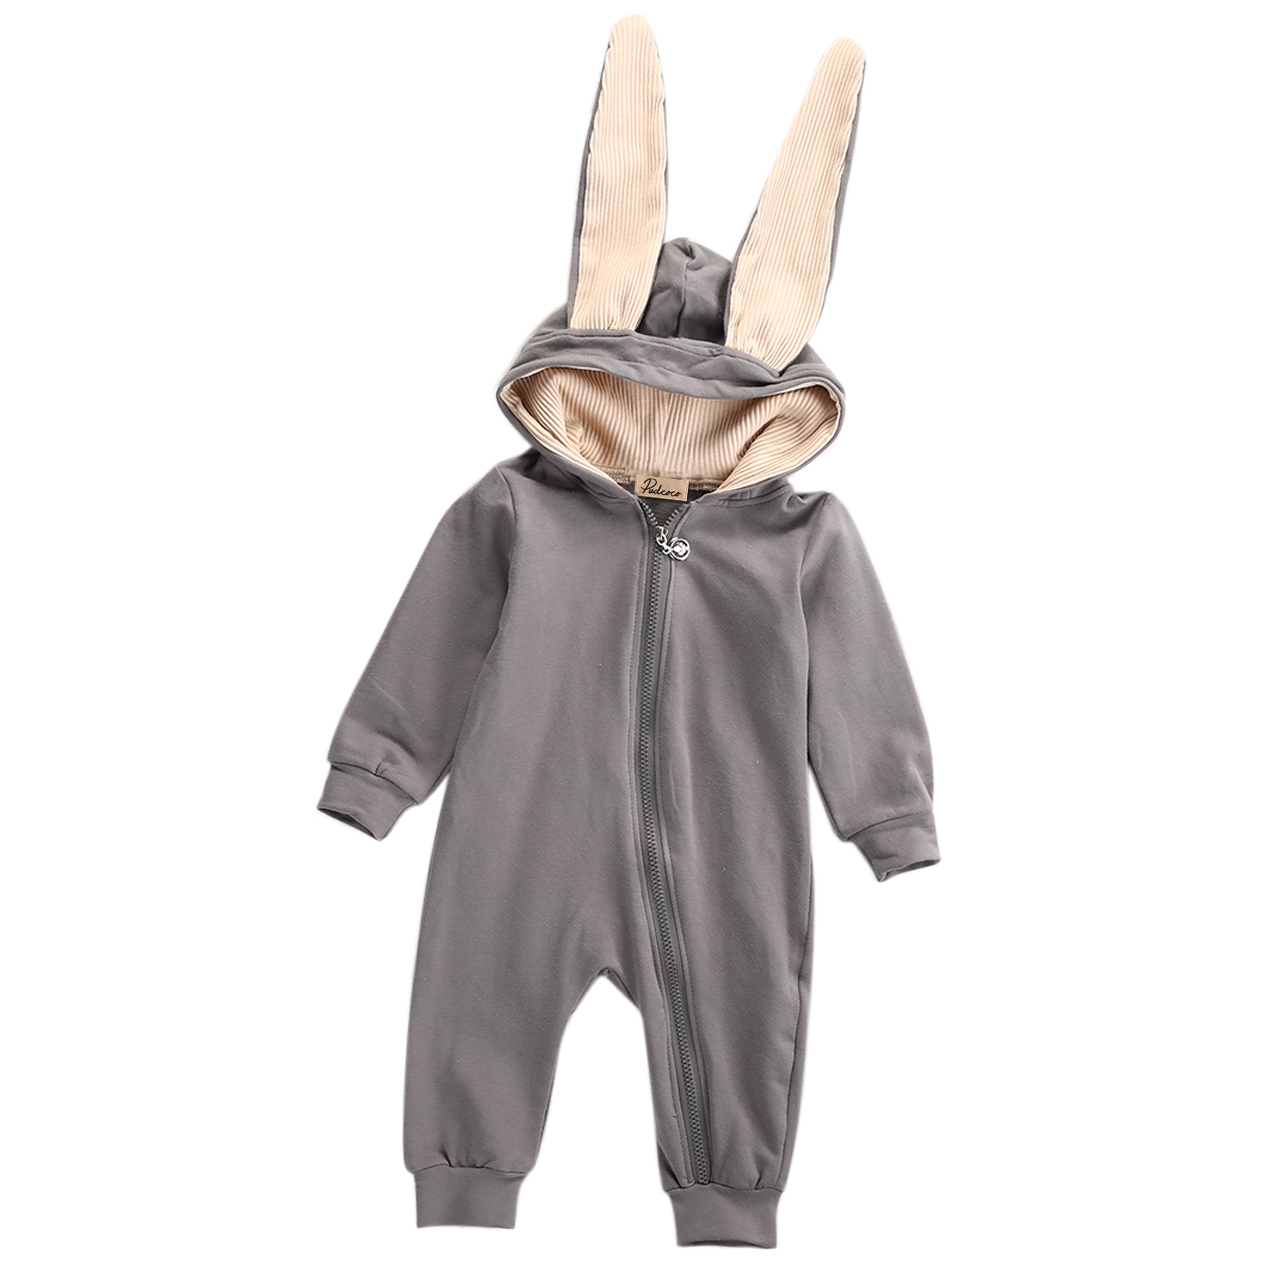 Pudcoco Lovely Baby Rompers Winter Warm Jumpsuit Long Sleeve Clothes Infant Baby Girl Boy 3D Ear Romper Gray Playsuit Outfits